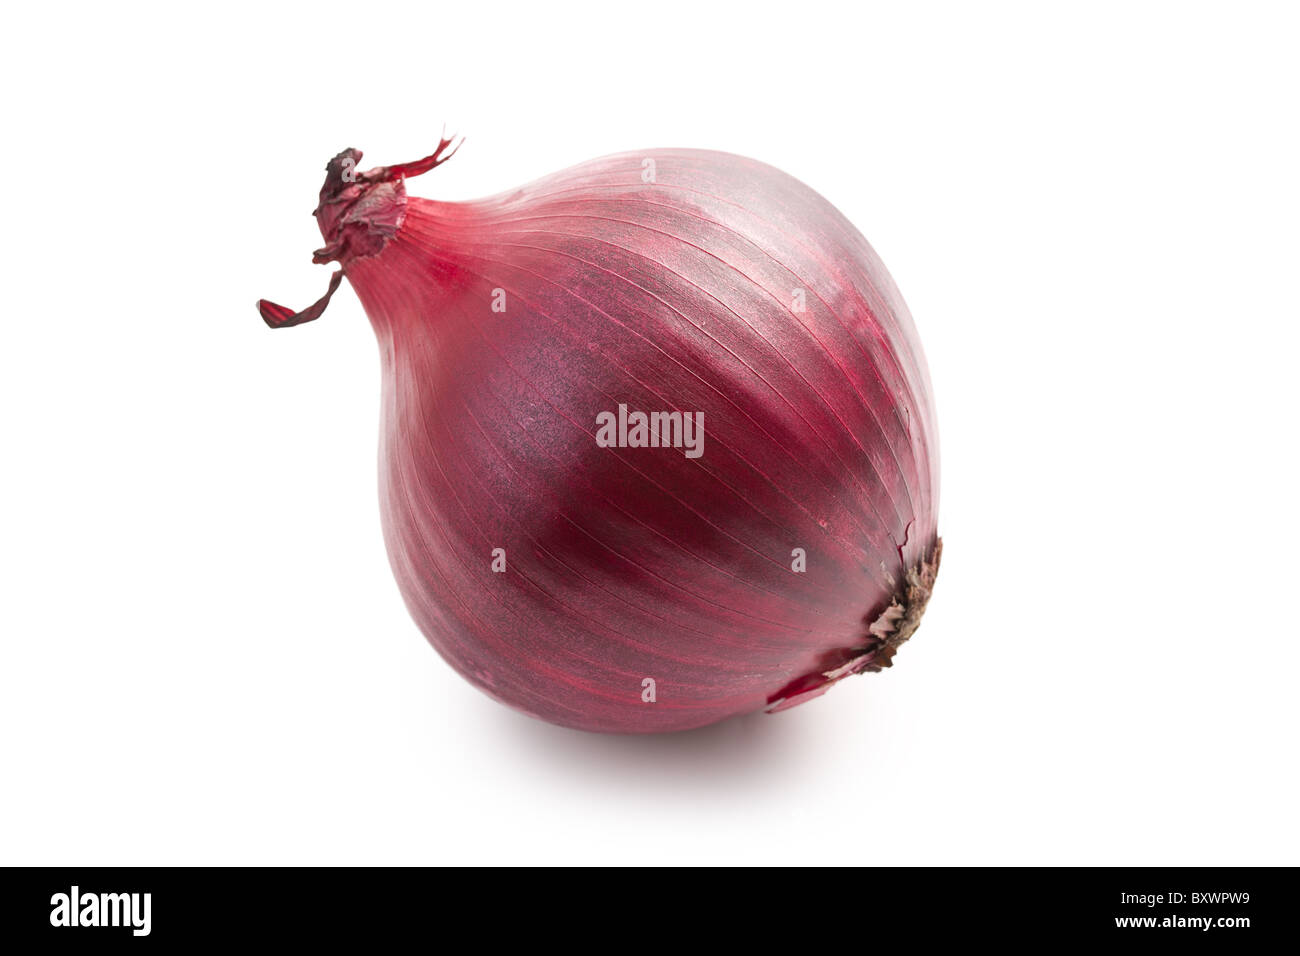 red onion isolated on white background - Stock Image